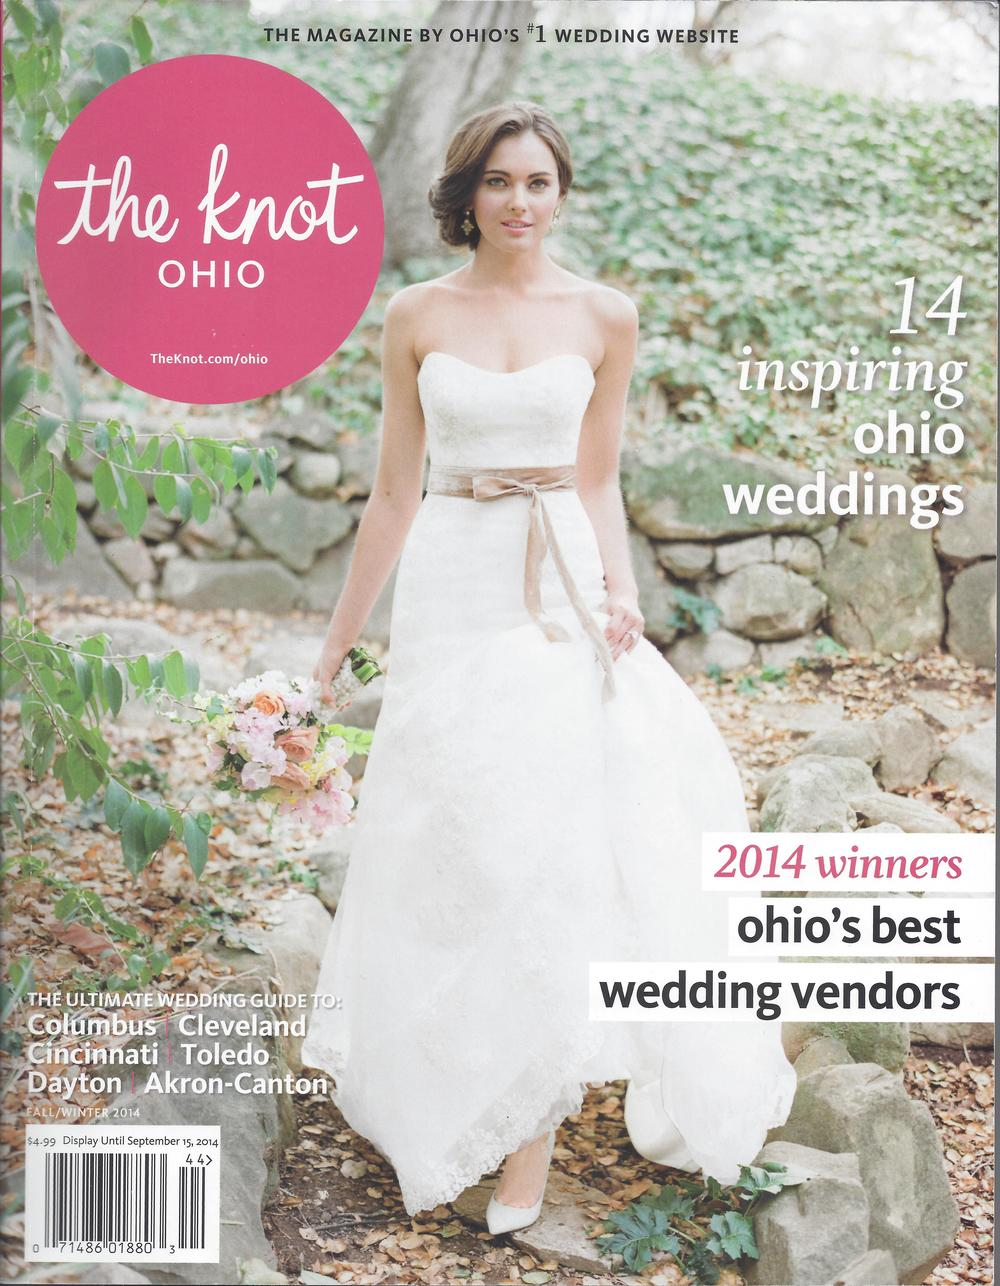 The Knot Cover Summer 2014.jpg